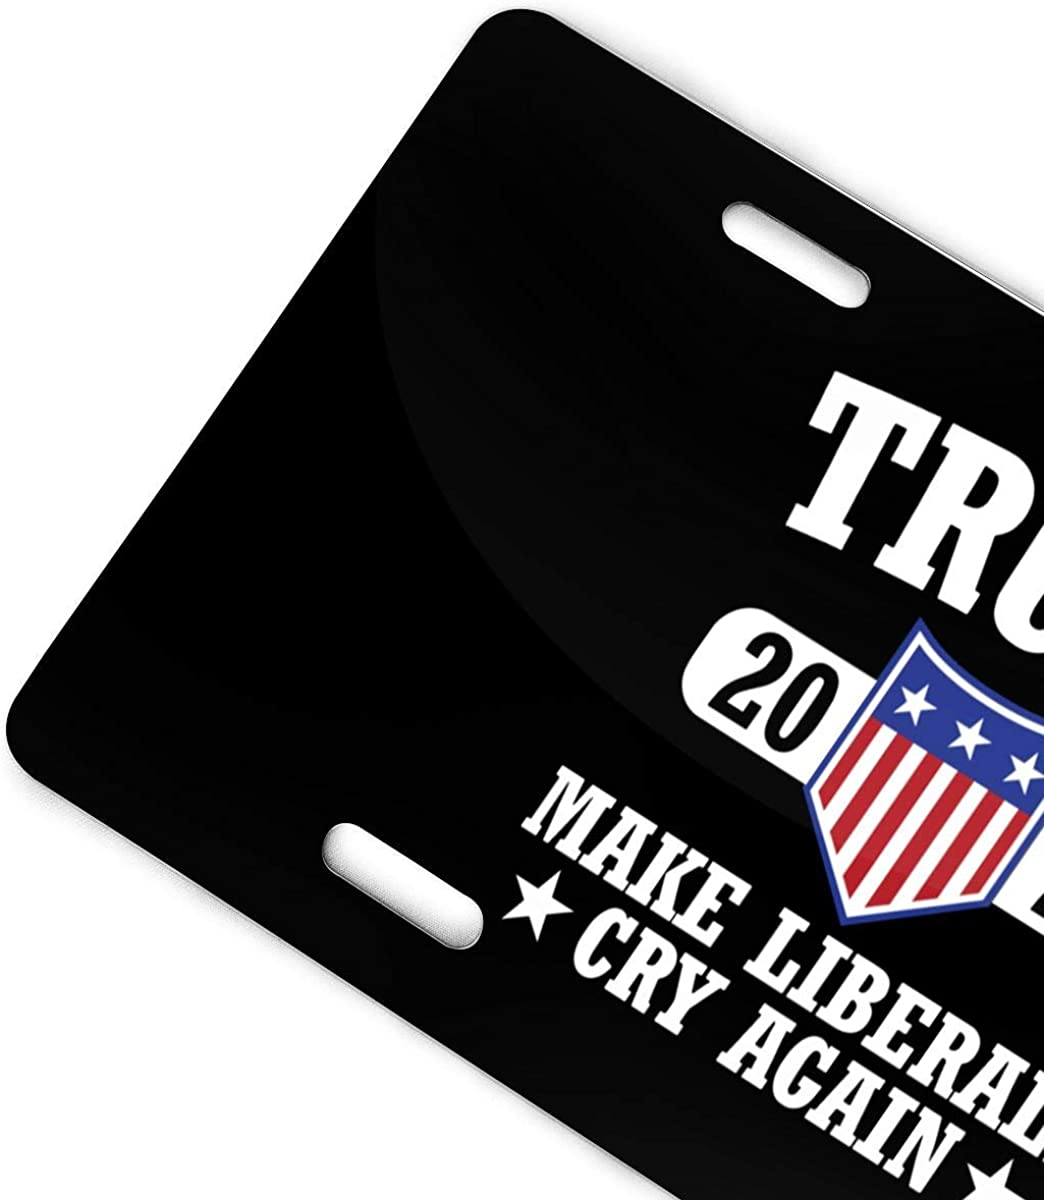 Jpnvxie Trump License Plate Covers Vanity Tag Metal Car Plate Decorative Car Front Aluminum License Plate for Men Women Boy Girls Car 6x12 Inch